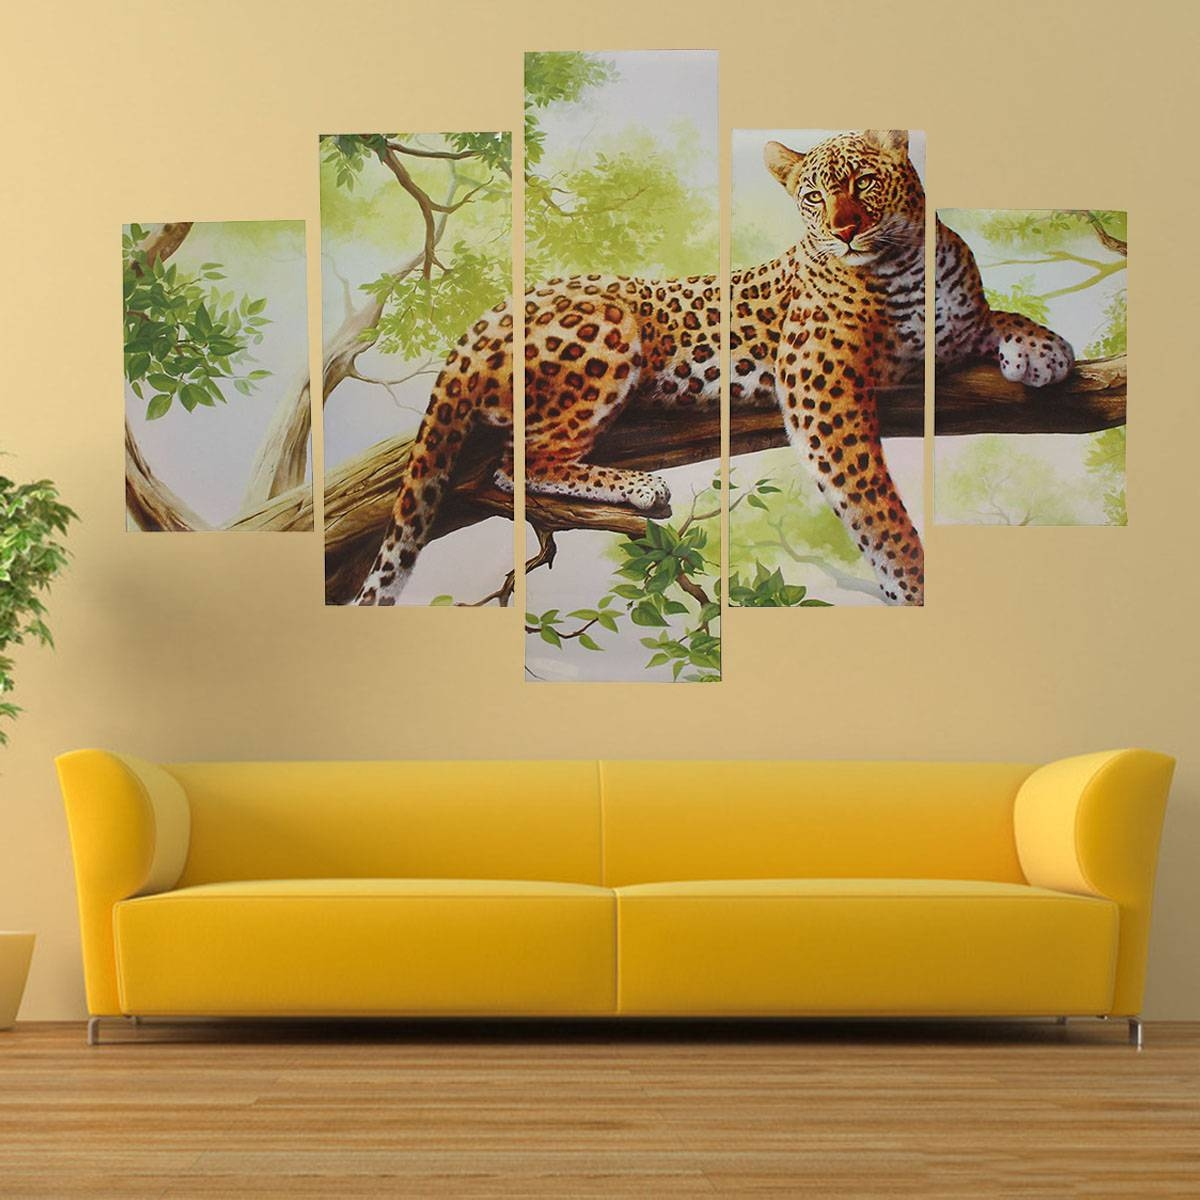 5Pcs Combination Canvas Print Painting Leopard Modern Wall Art Throughout Current Leopard Print Wall Art (View 8 of 25)